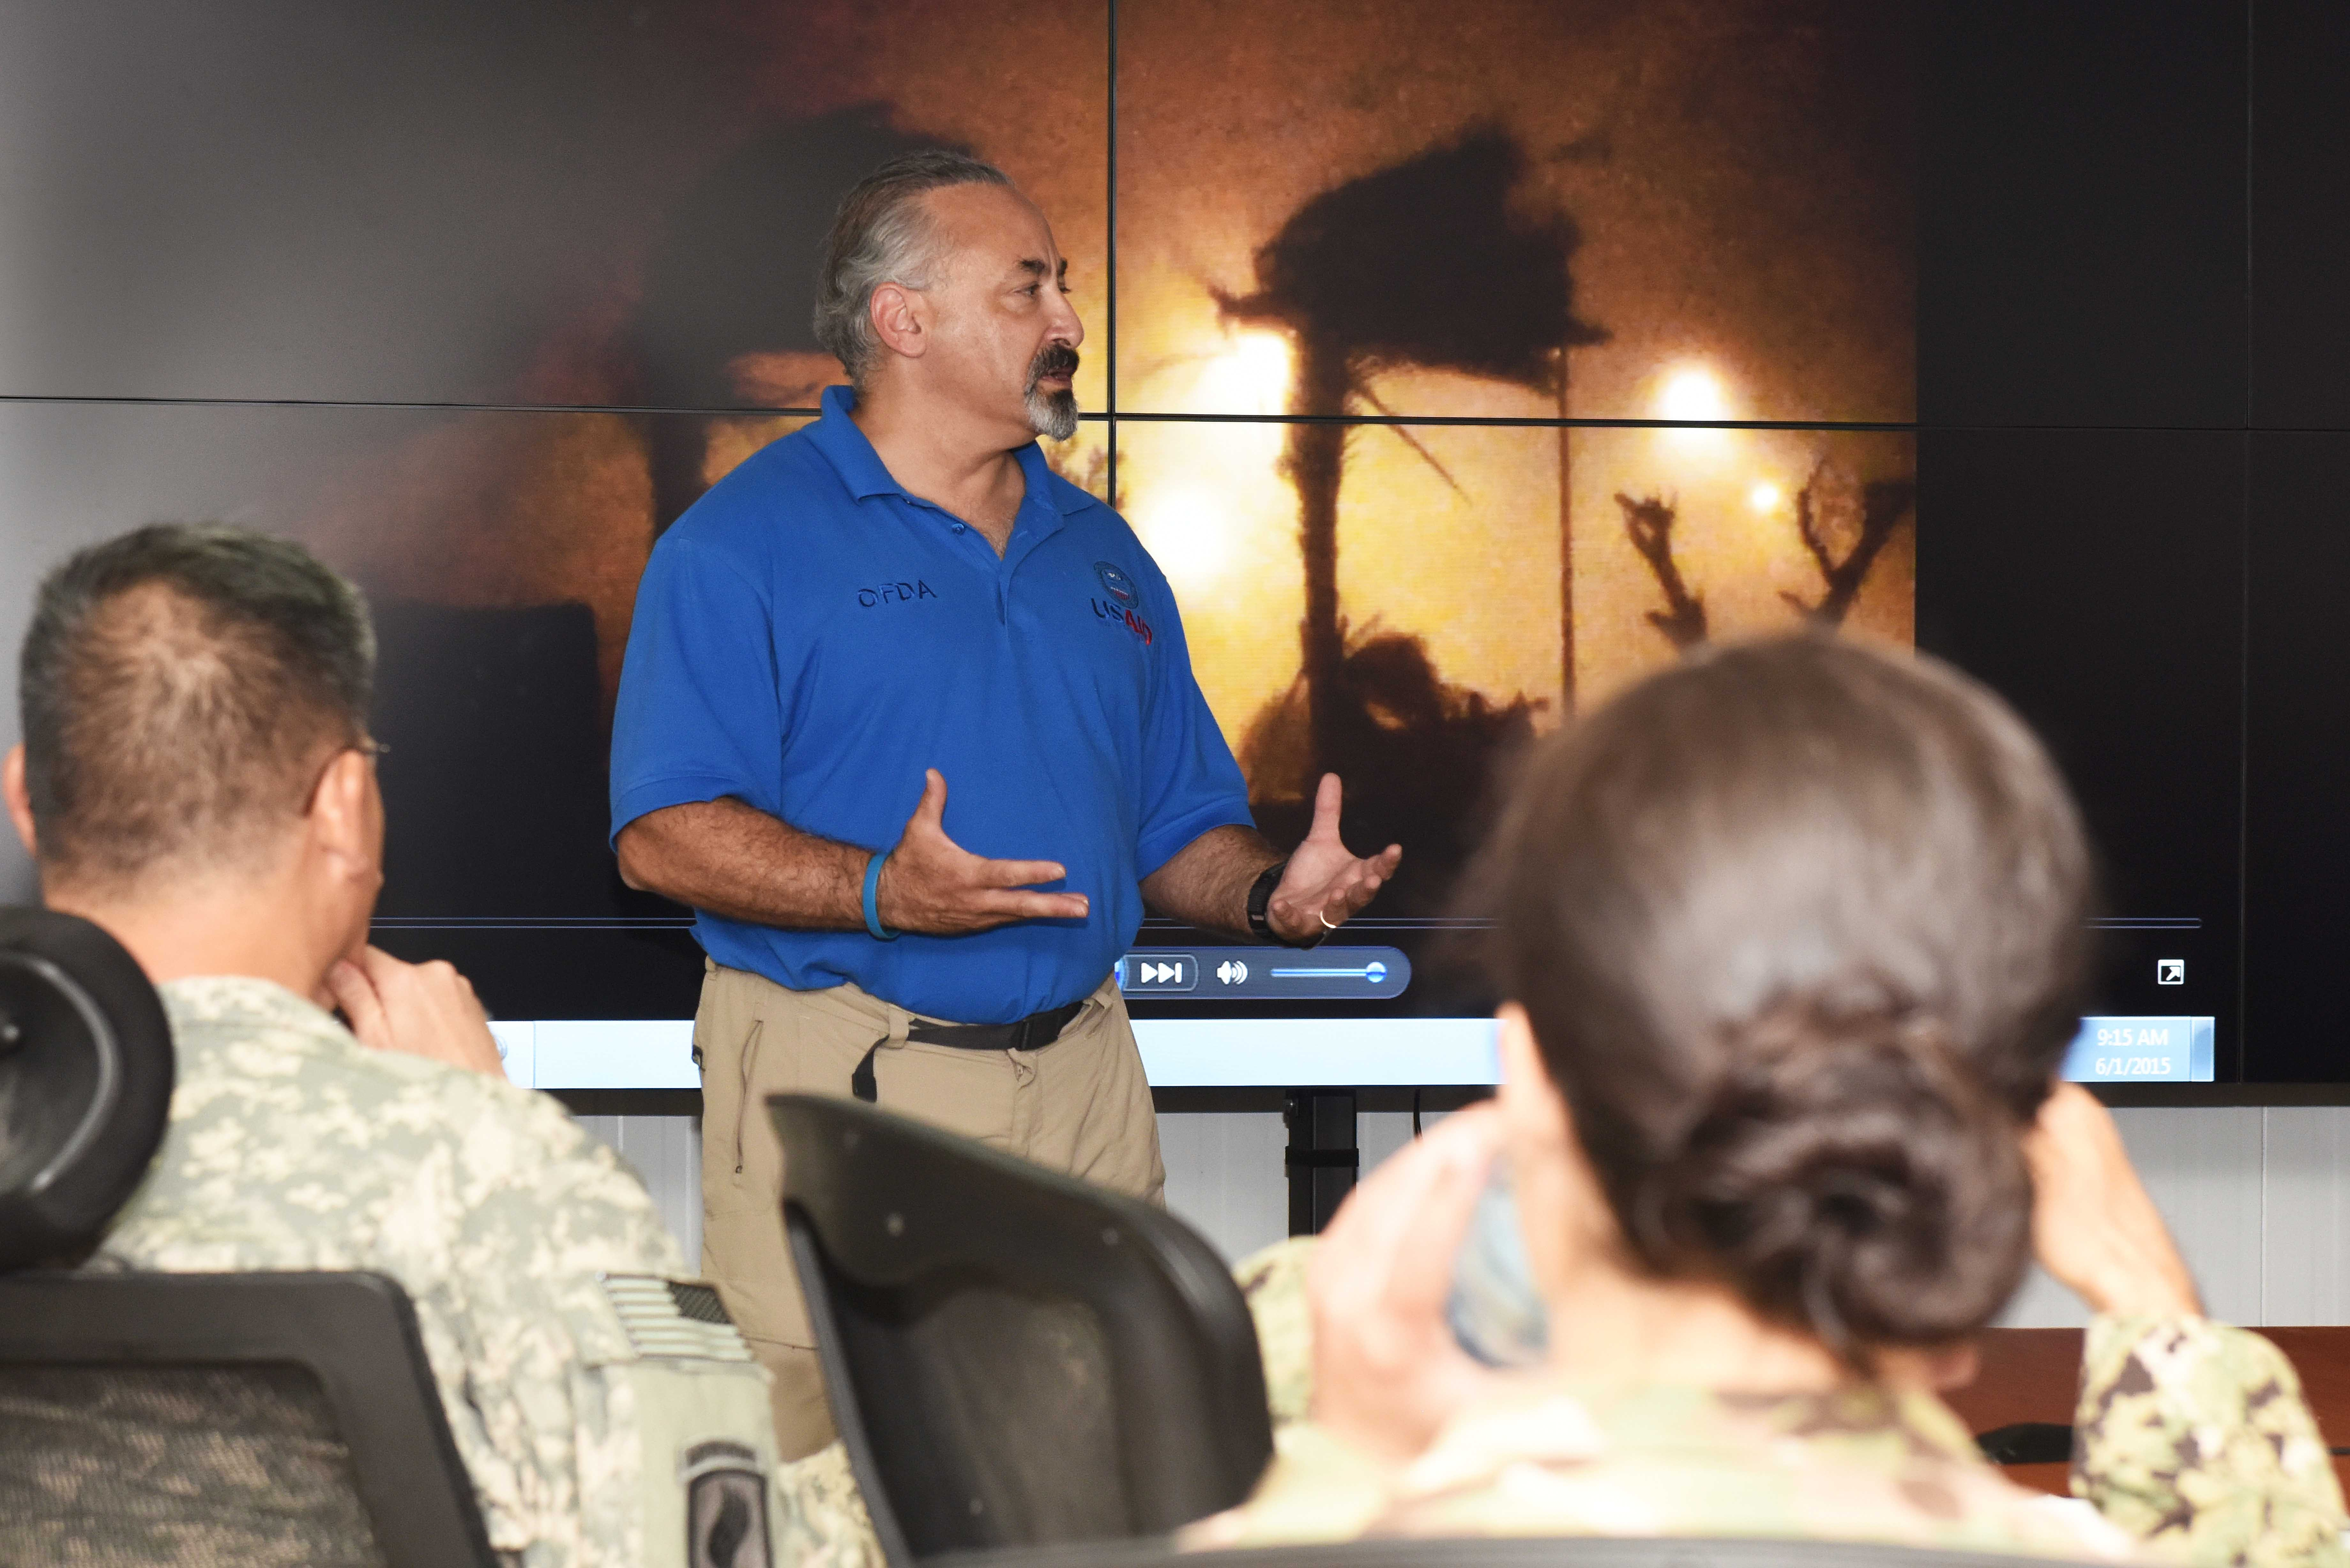 Steven Katz, Africa Command humanitarian assistance advisor instructs a joint humanitarian operations course at Camp Lemonnier, Djibouti June 1, 2015.  Course attendees learned about the relationship between USAID's Office of U.S. Foreign Disaster Assistance, its partners and the U.S. military, and learned about humanitarian assistance and disaster response operations.  (U.S. Air Force photo by Staff Sgt. Maria Bowman)